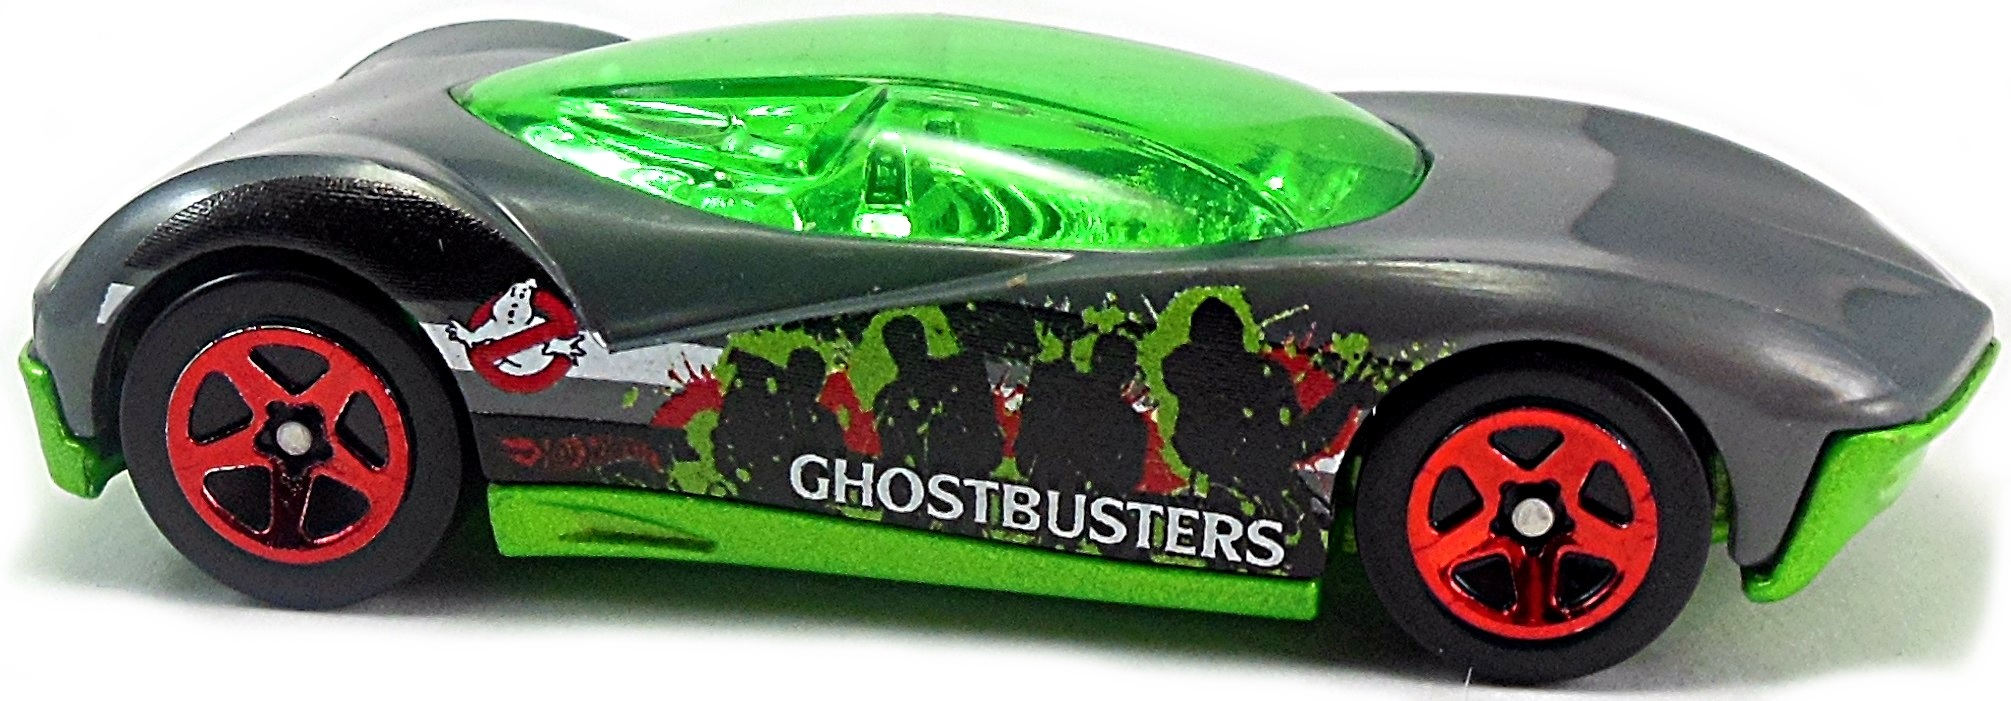 o gray green metal base chrome int green canopy green black red and white team silhouette design on sides sp5rd th ghostbusters 6 walmart excl - Orange Canopy 2016